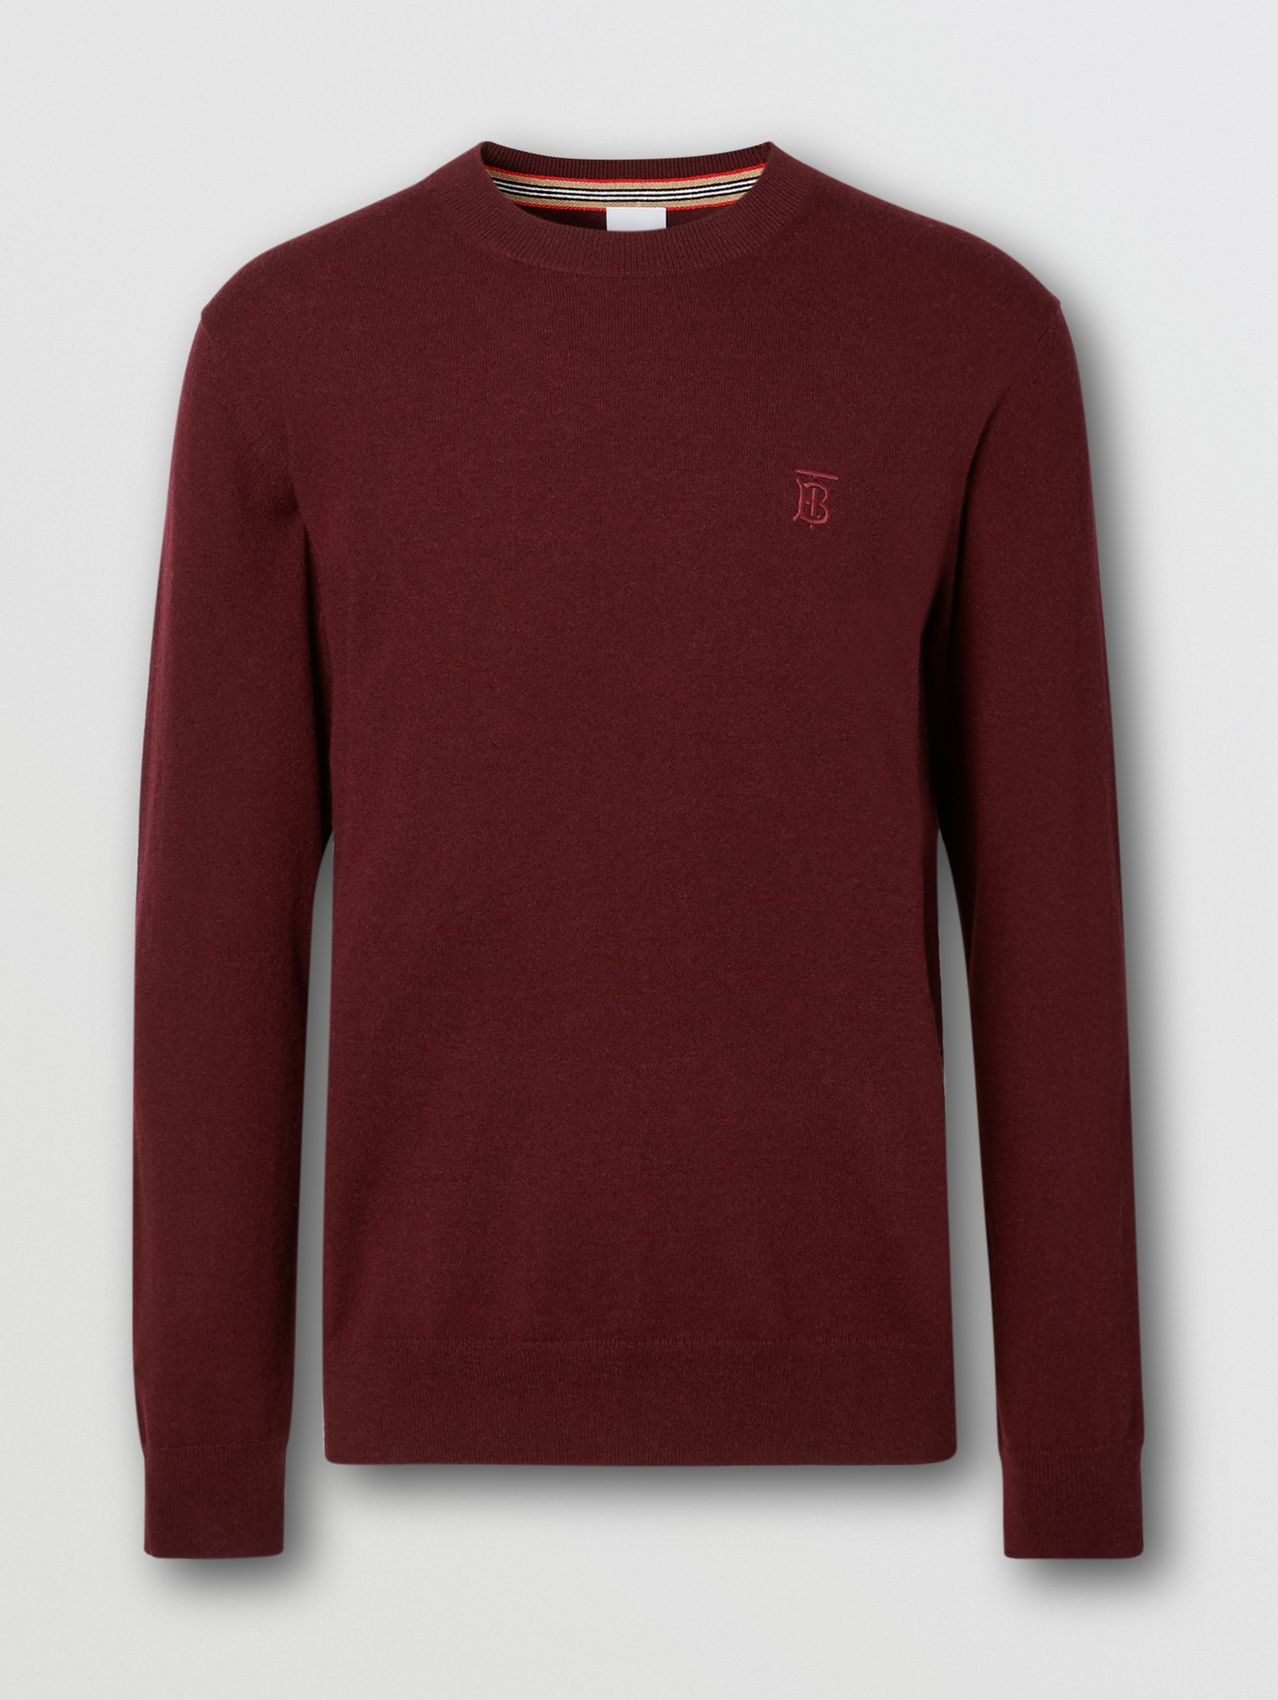 Monogram Motif Cashmere Sweater in Deep Merlot